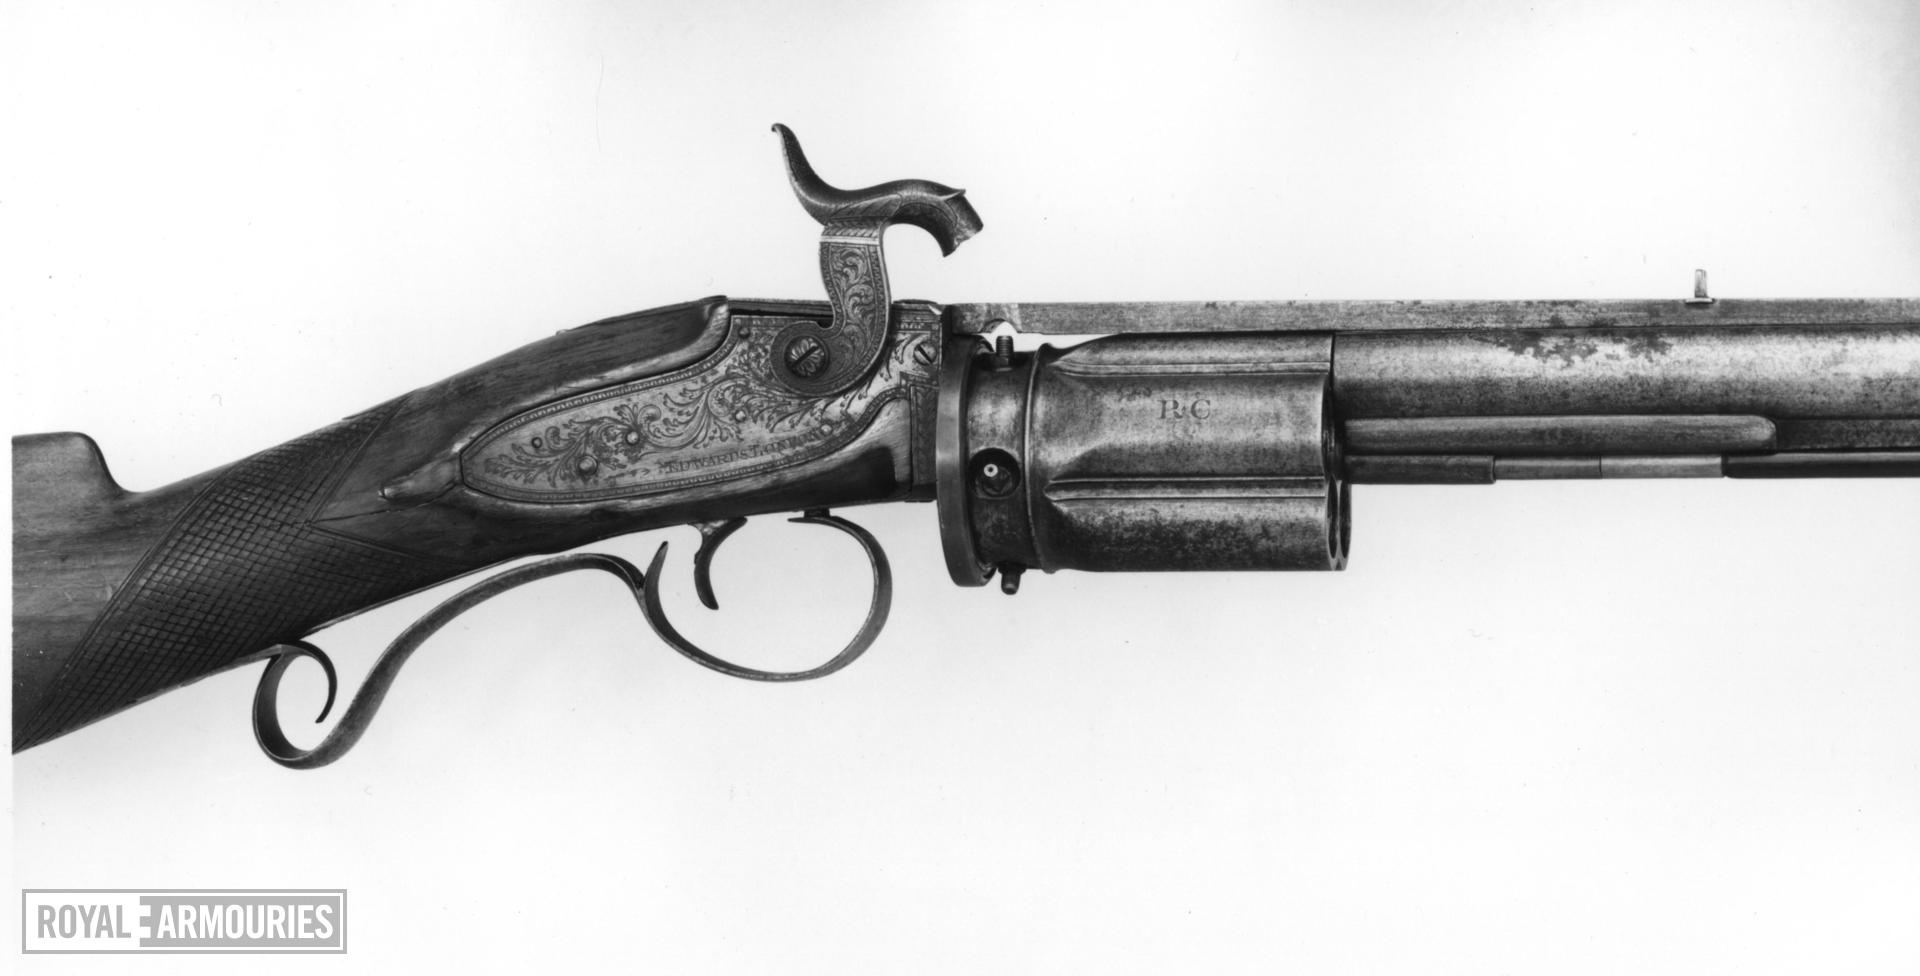 Percussion five-shot revolver rifle - Collier Patent Collier's patent by Francis Edwards